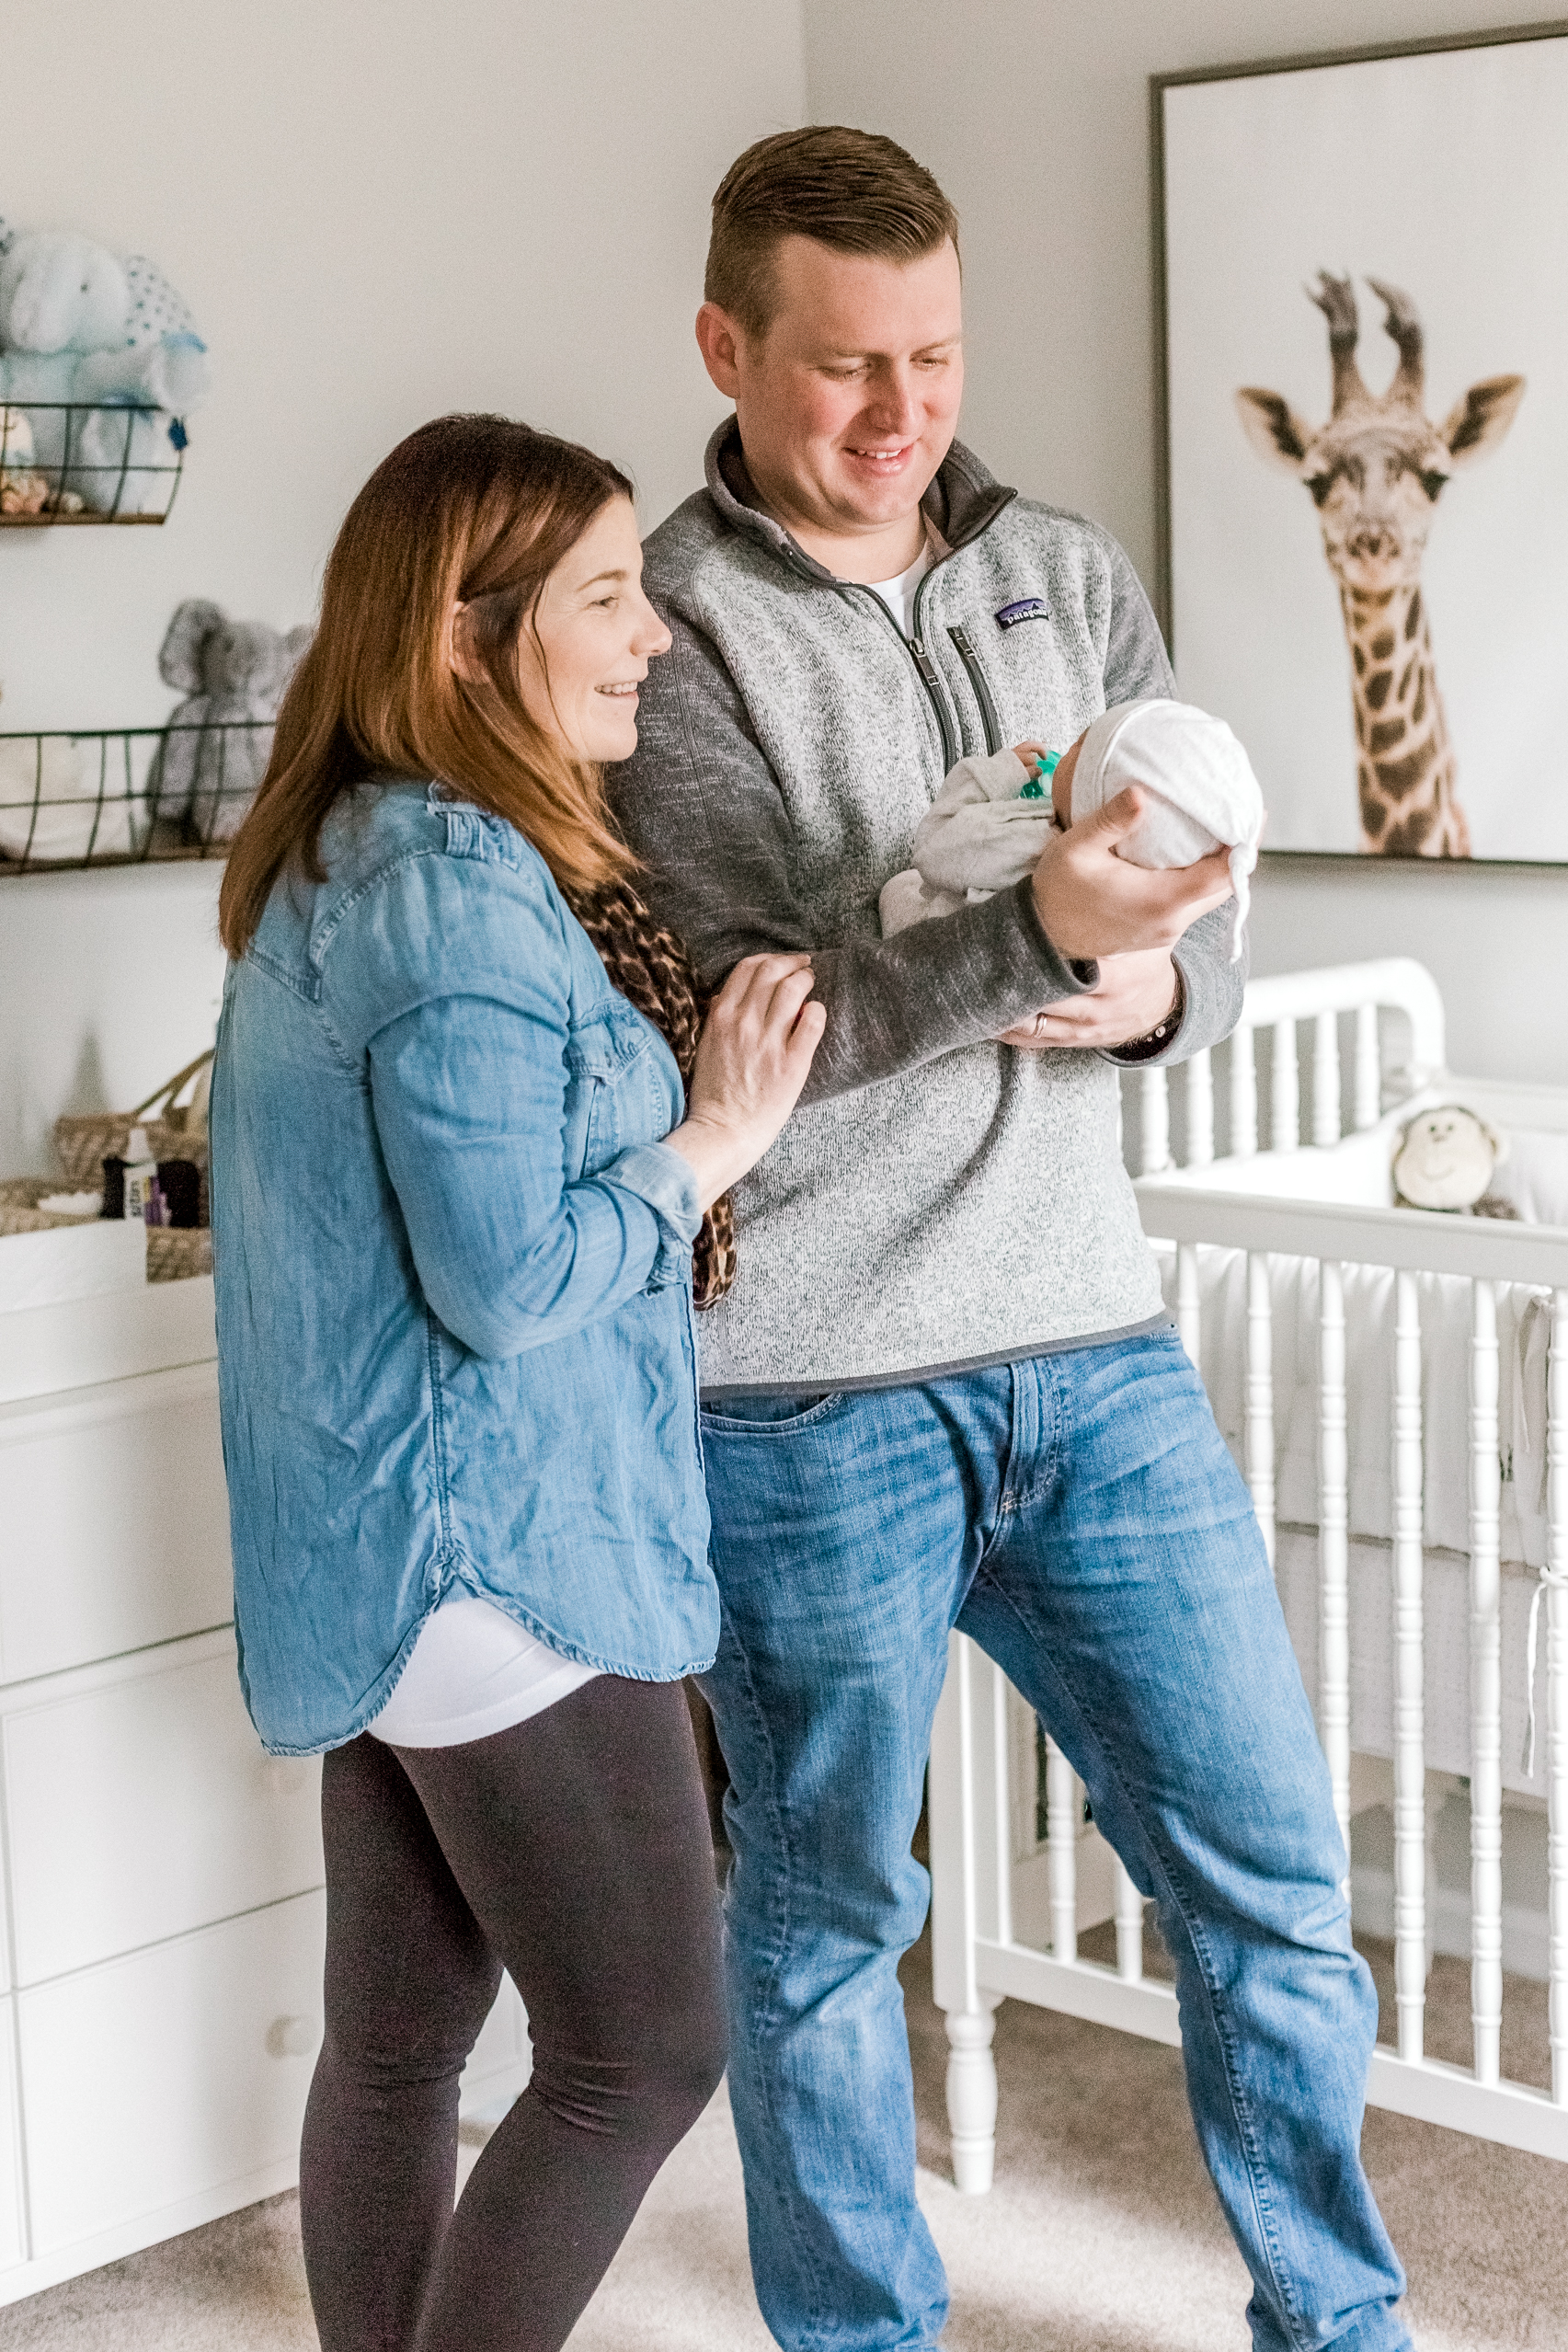 Blue Bell Pennsylvania In home newborn session with dog white and gray animal nursery wedding and lifestyle photographer Lytle Photo Co (61 of 109).jpg